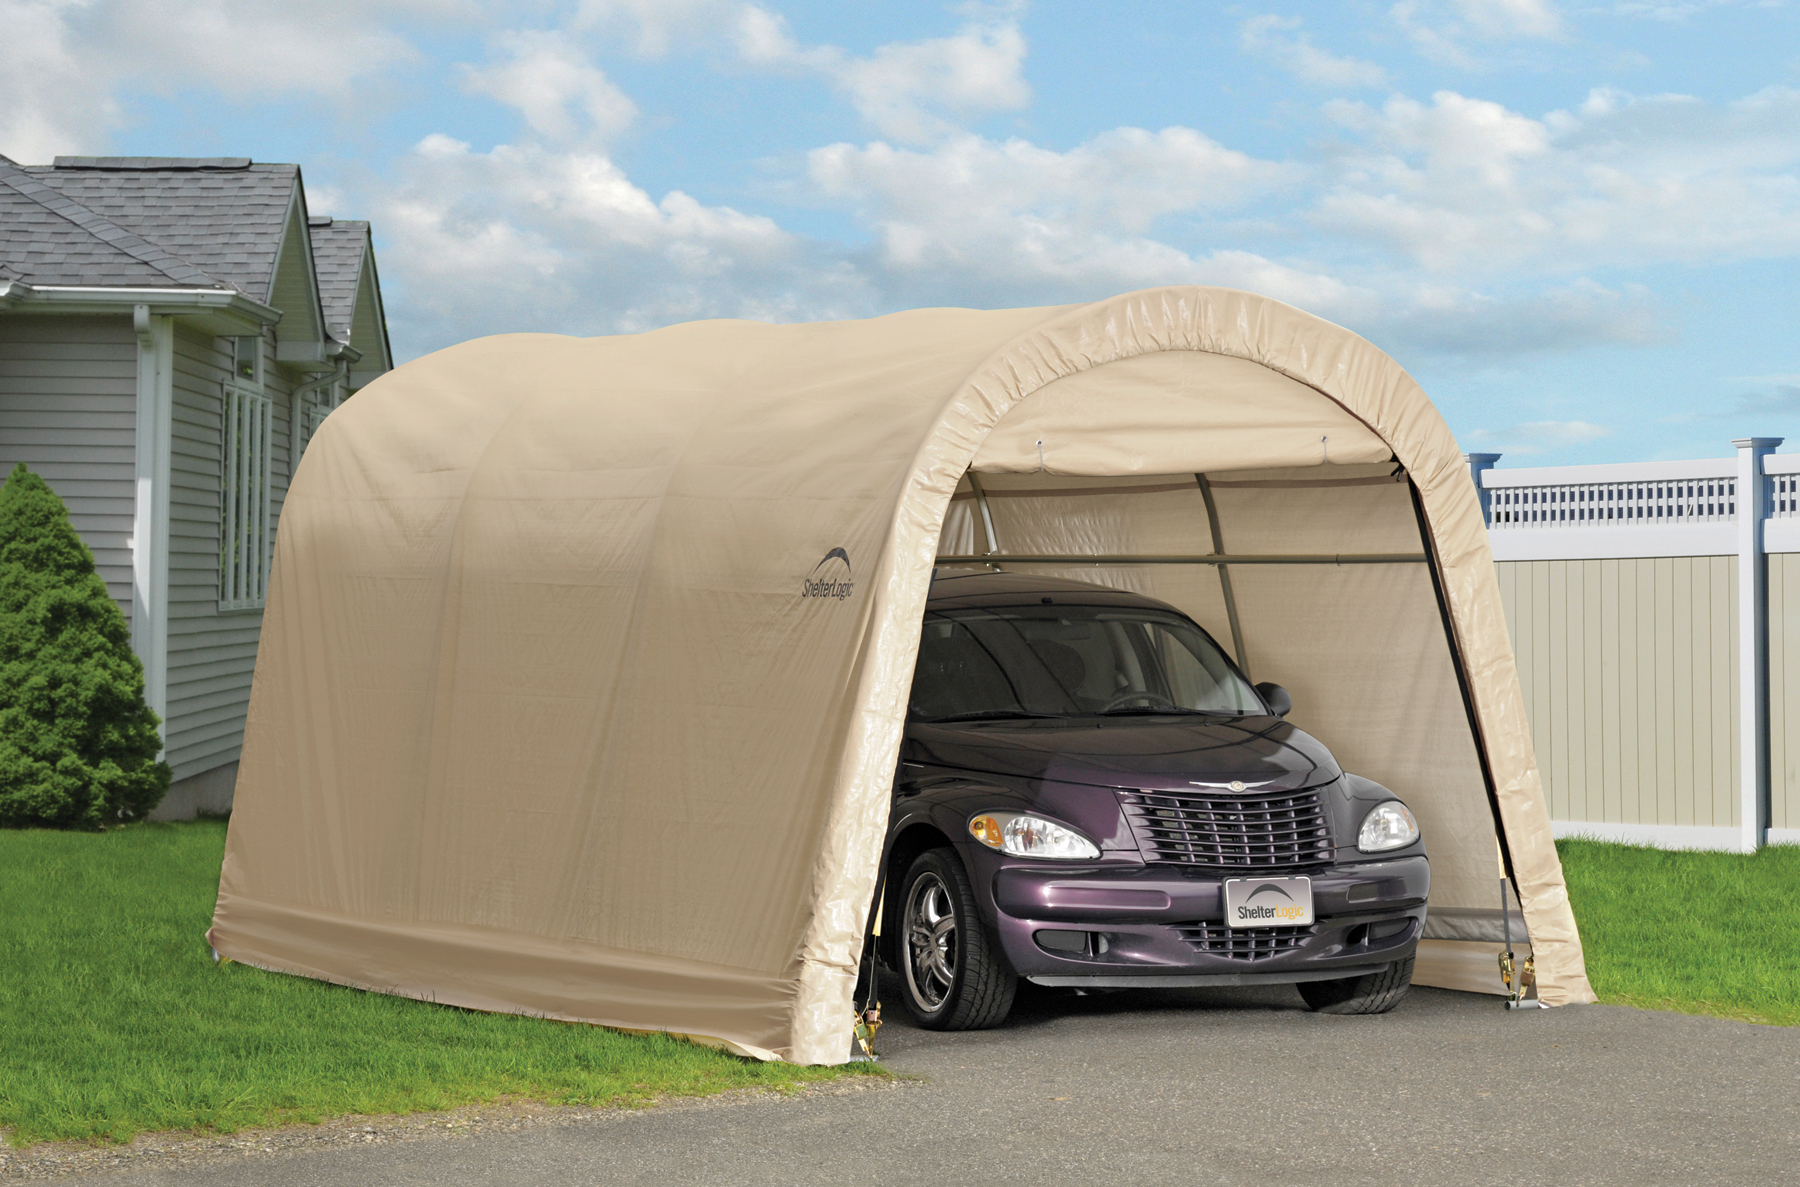 Portable Carport With Shed : Autoshelter roundtop portable garage creative